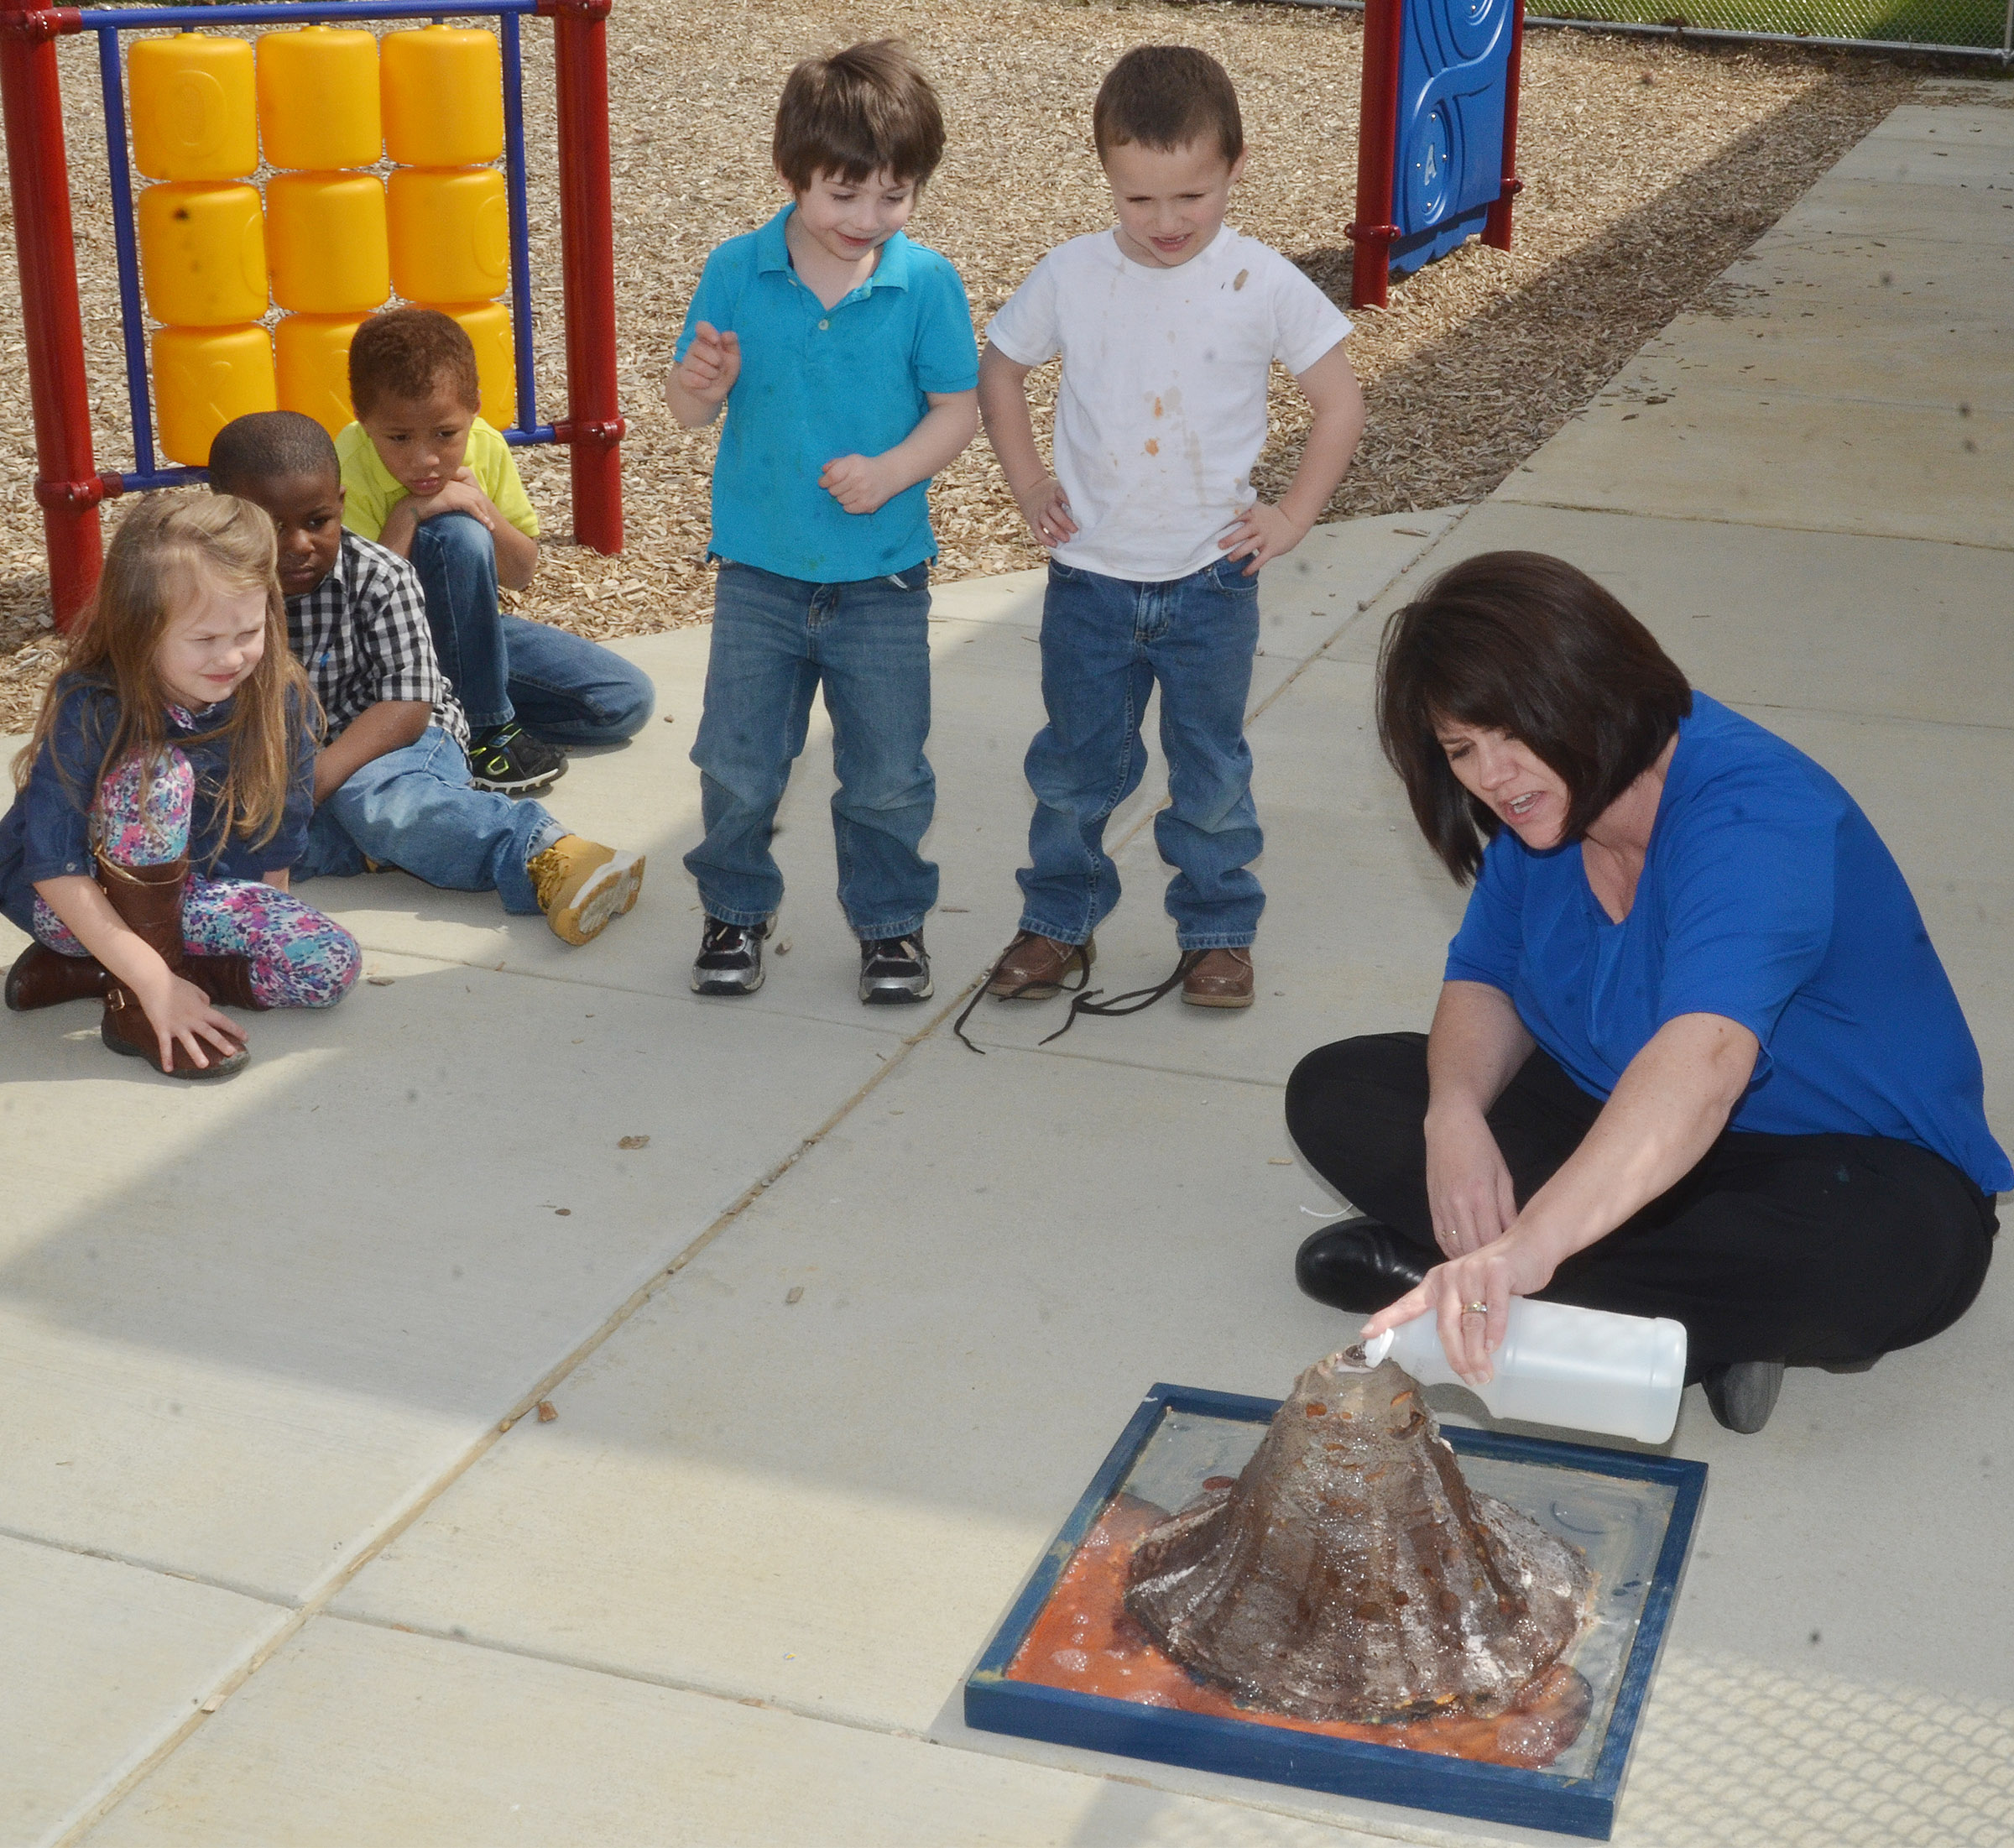 CES preschool teacher Denise Spencer adds vinegar to make the volcano erupt.